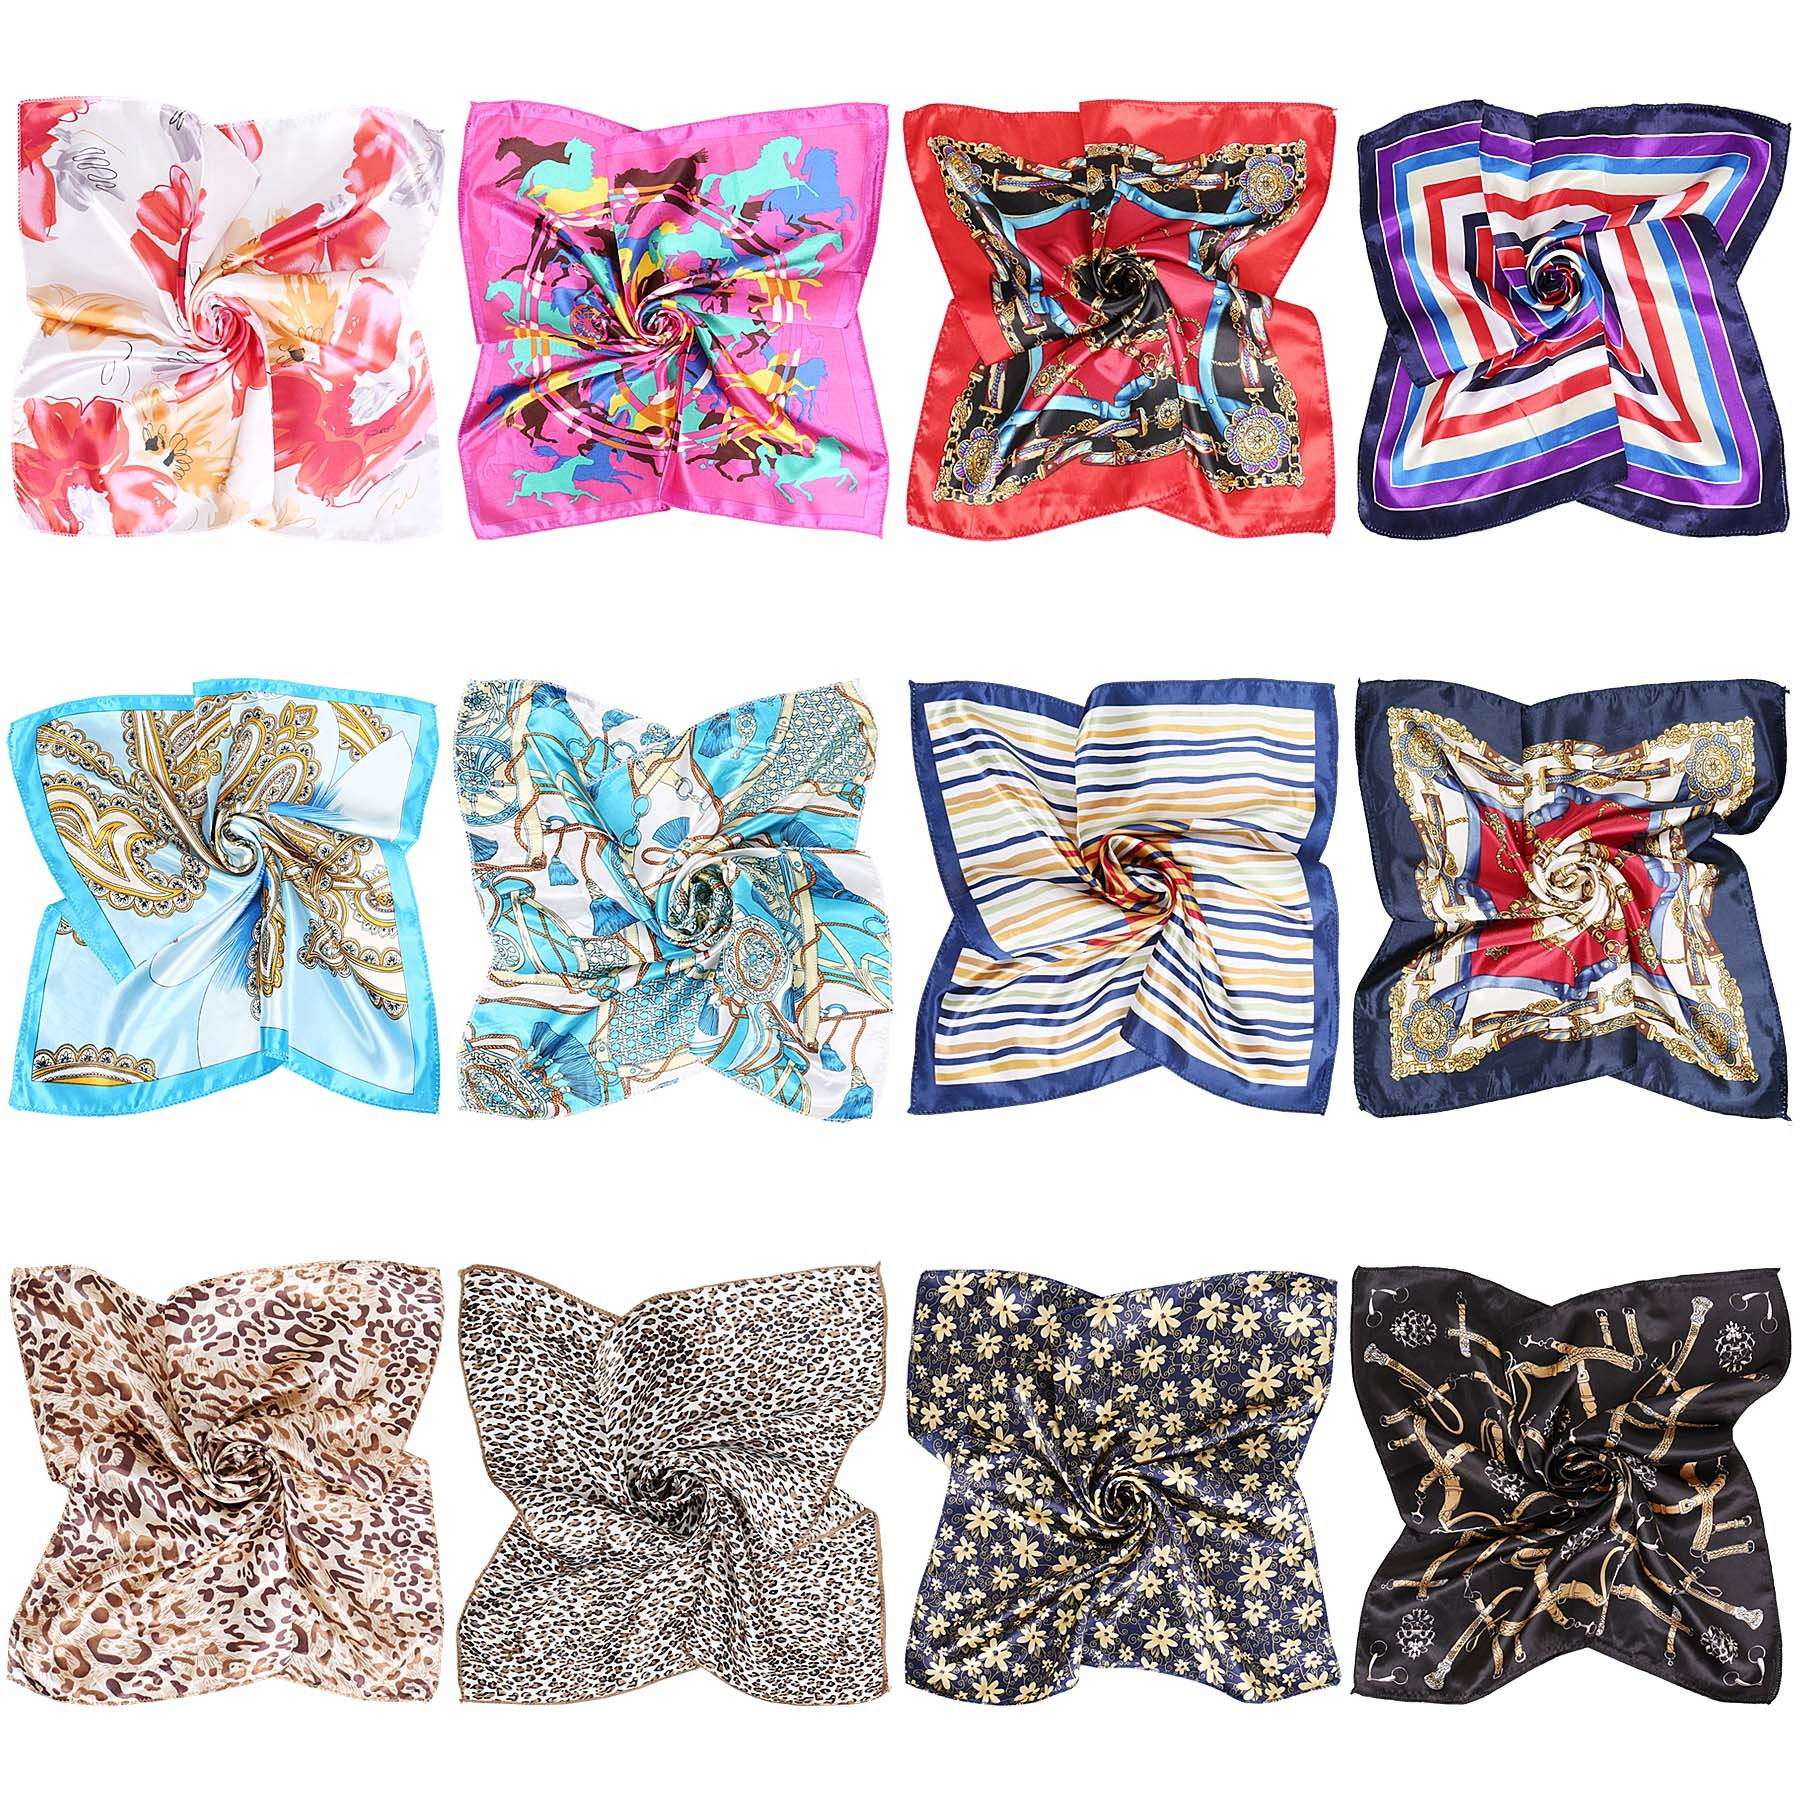 BMC 12pc Women's Silky Scarf Square Mixed Pattern & Colors Fashion Accessory Set -A Little Bit of Everything Pack